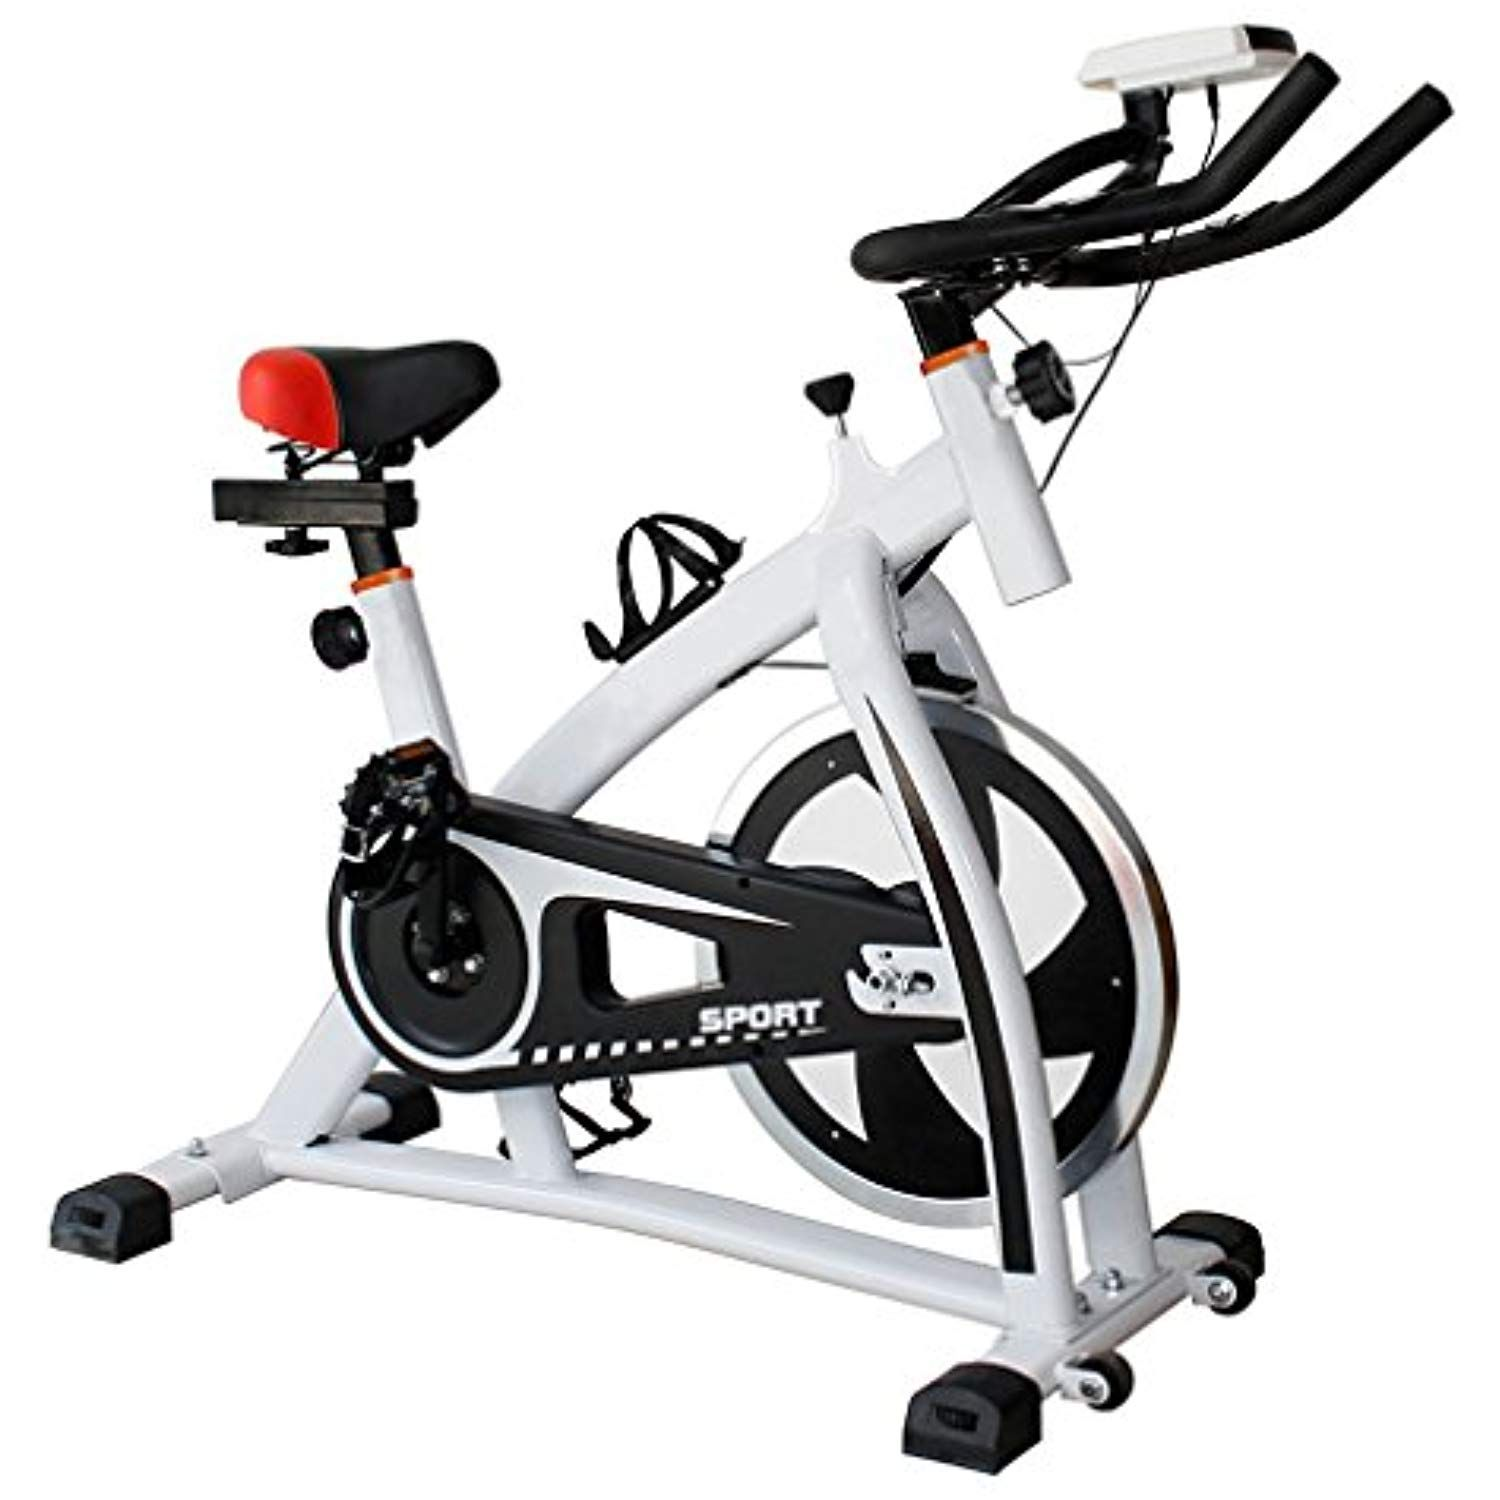 Nexttechnology Exercise Bike Stationary Bicycle Home Fitness Gym